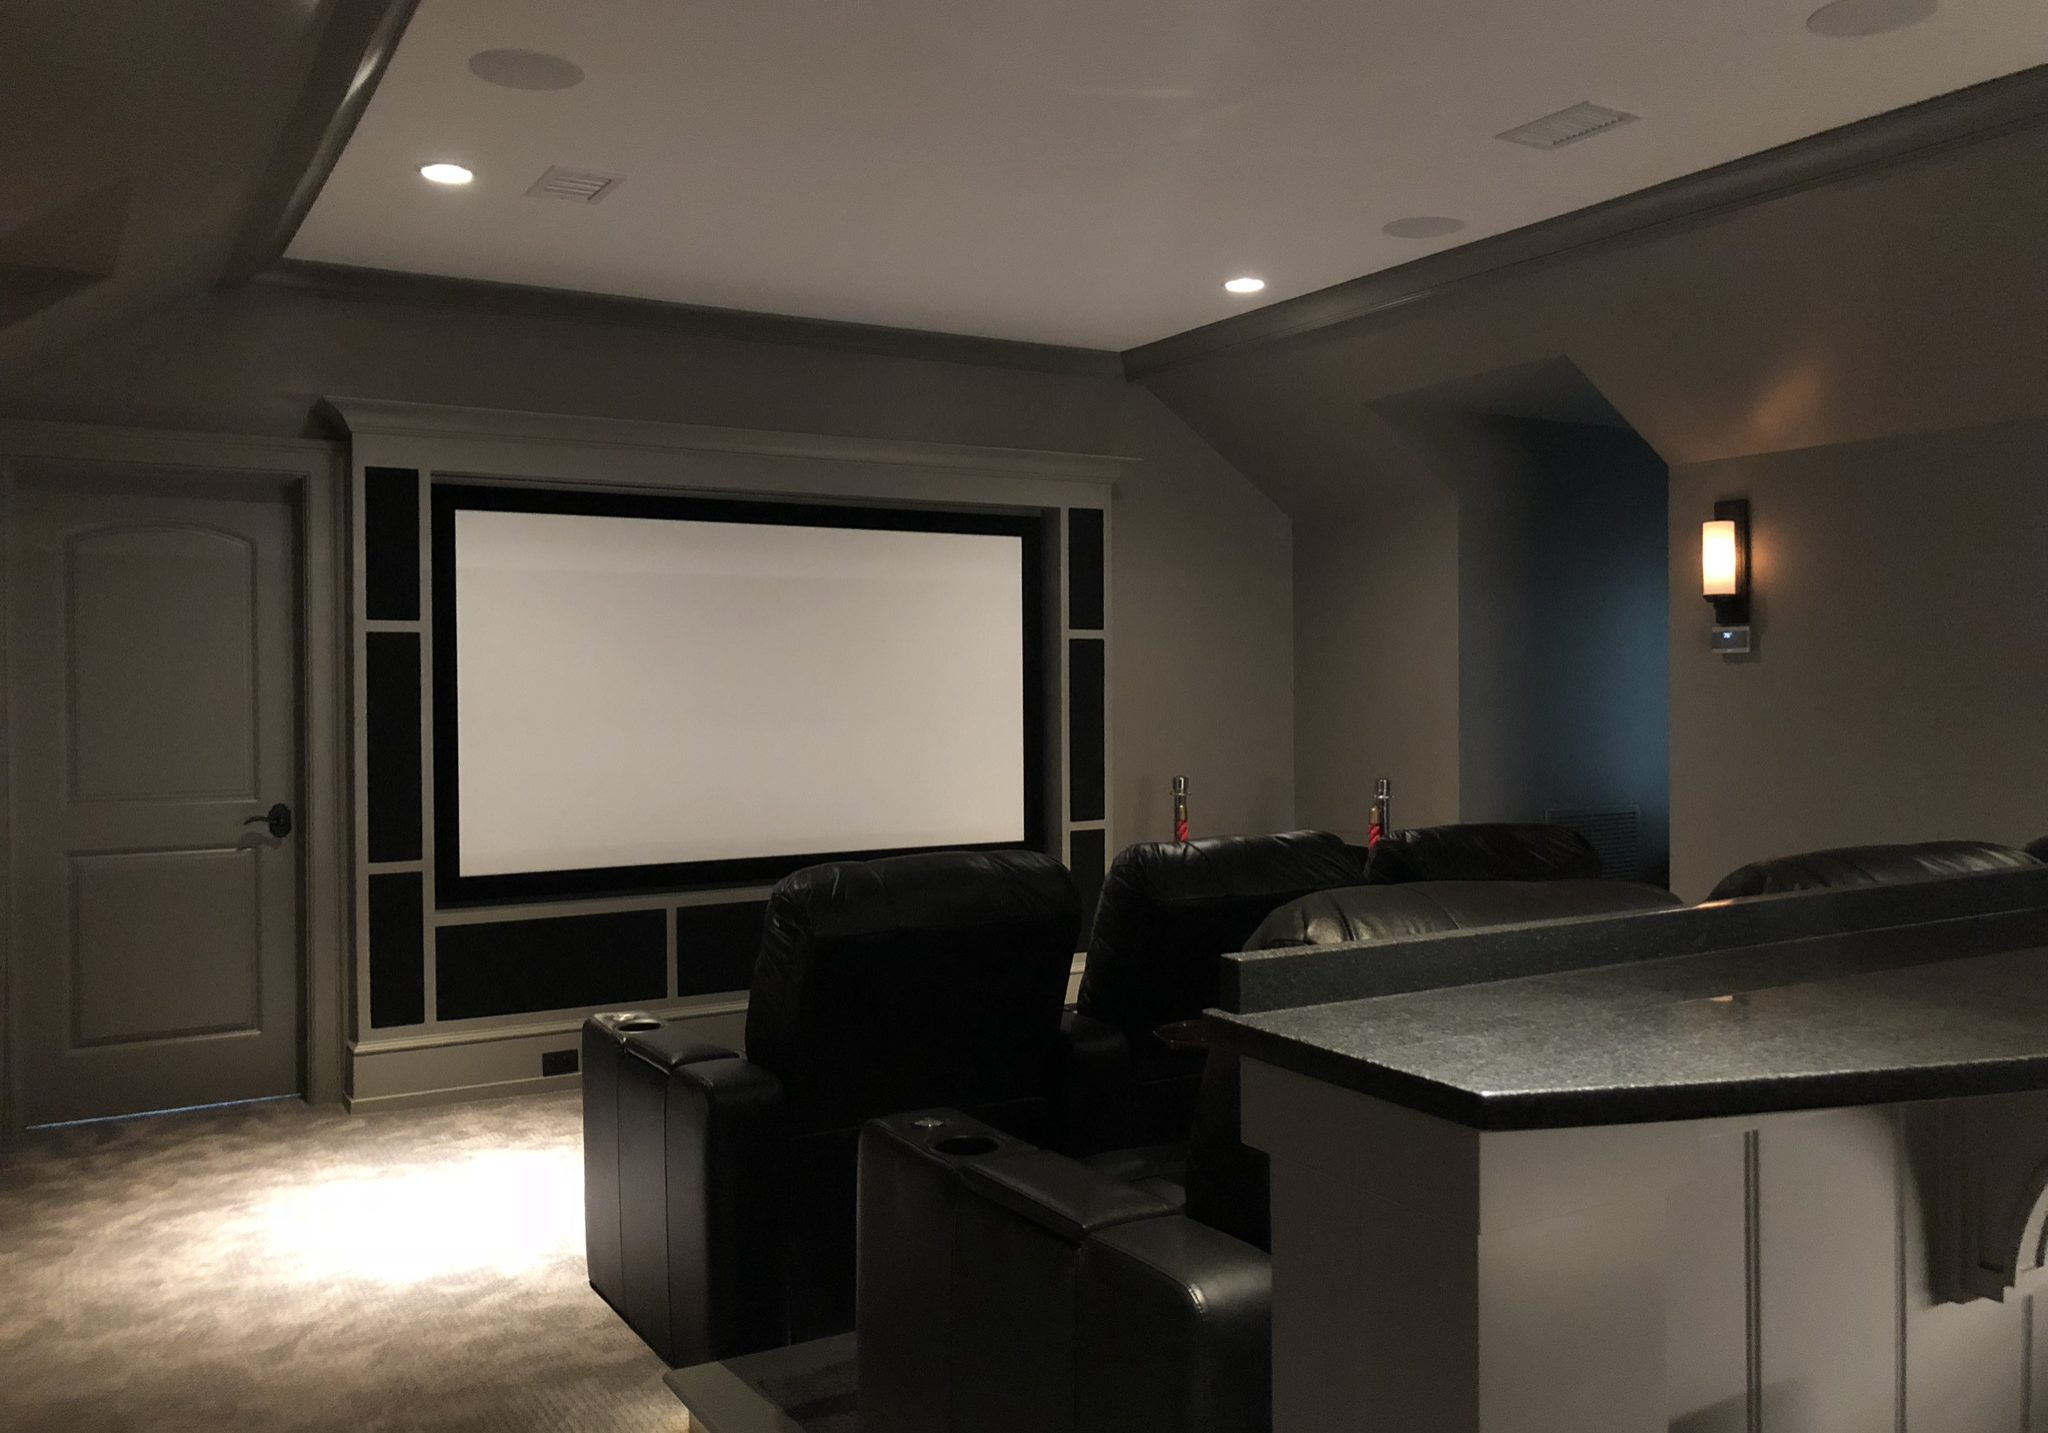 Final stages of a custom built home theater room